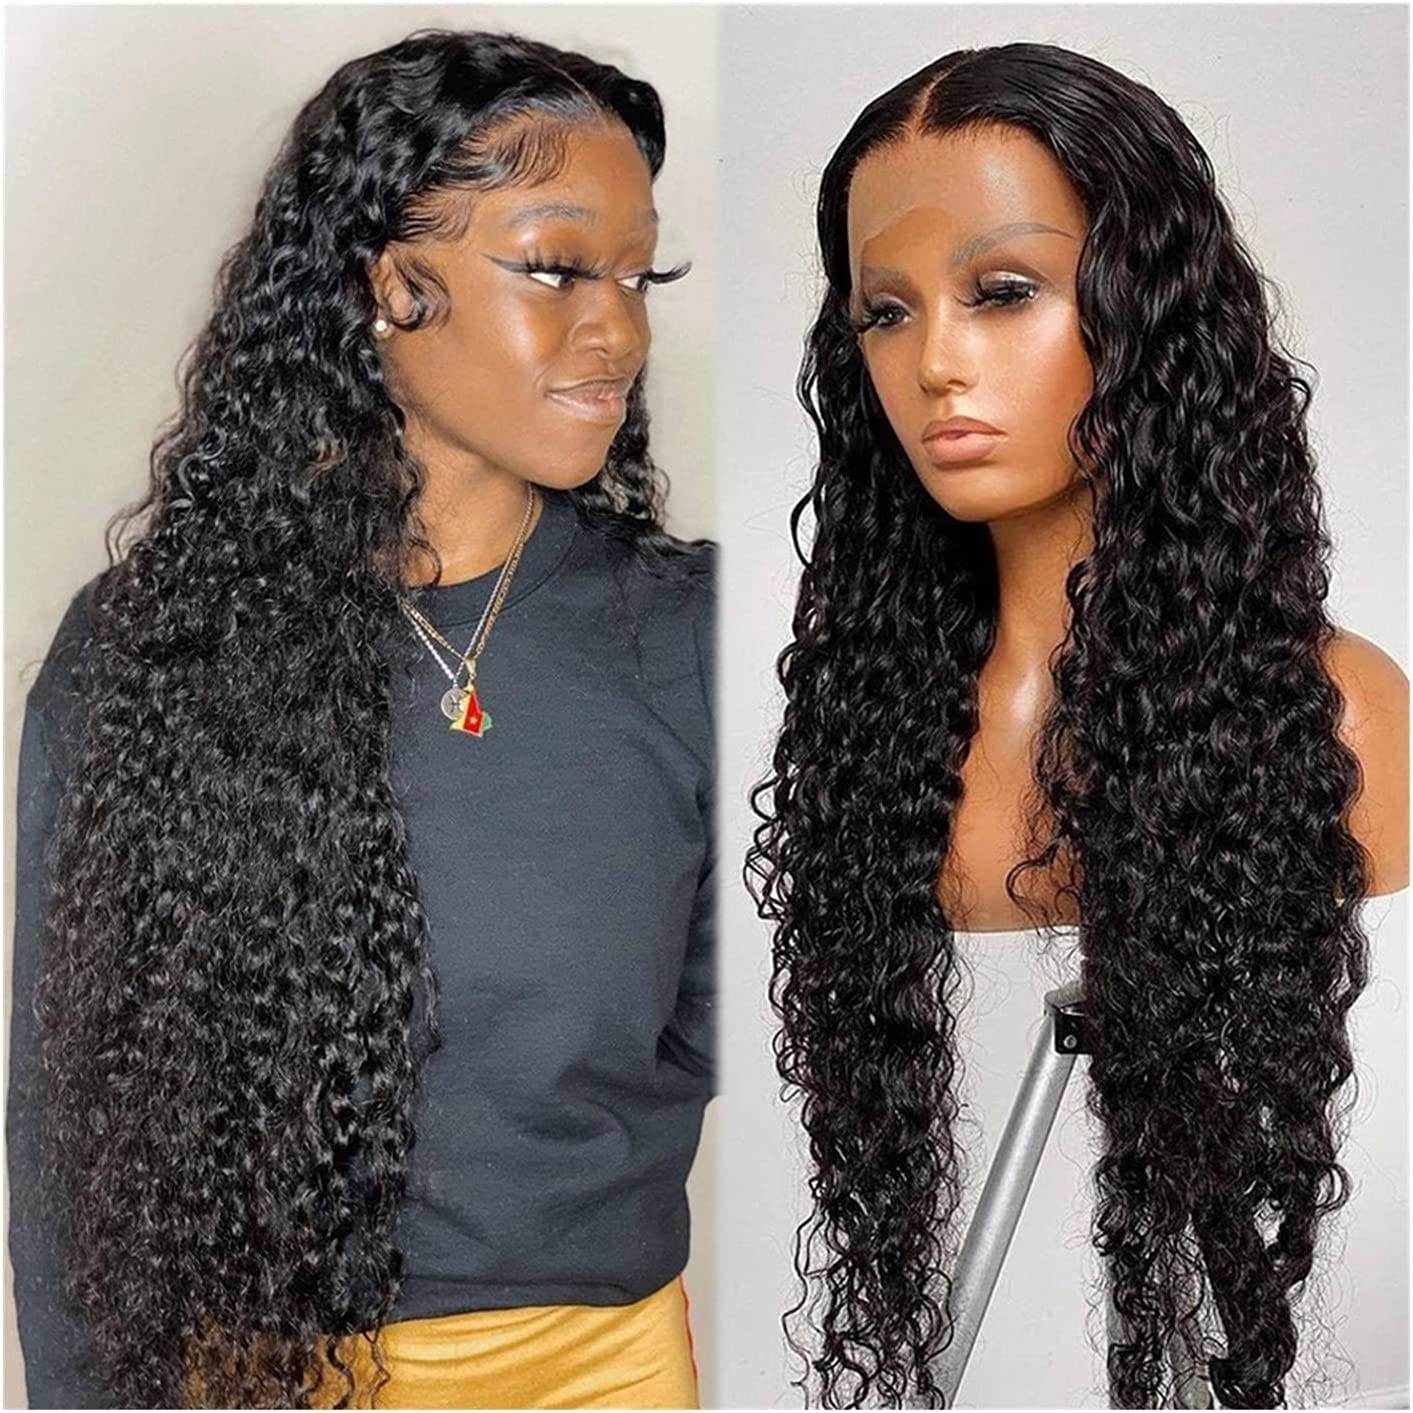 WDZJM Finally resale start Wig Water Wave Lace Max 43% OFF Human W Transparent Hair Forehead